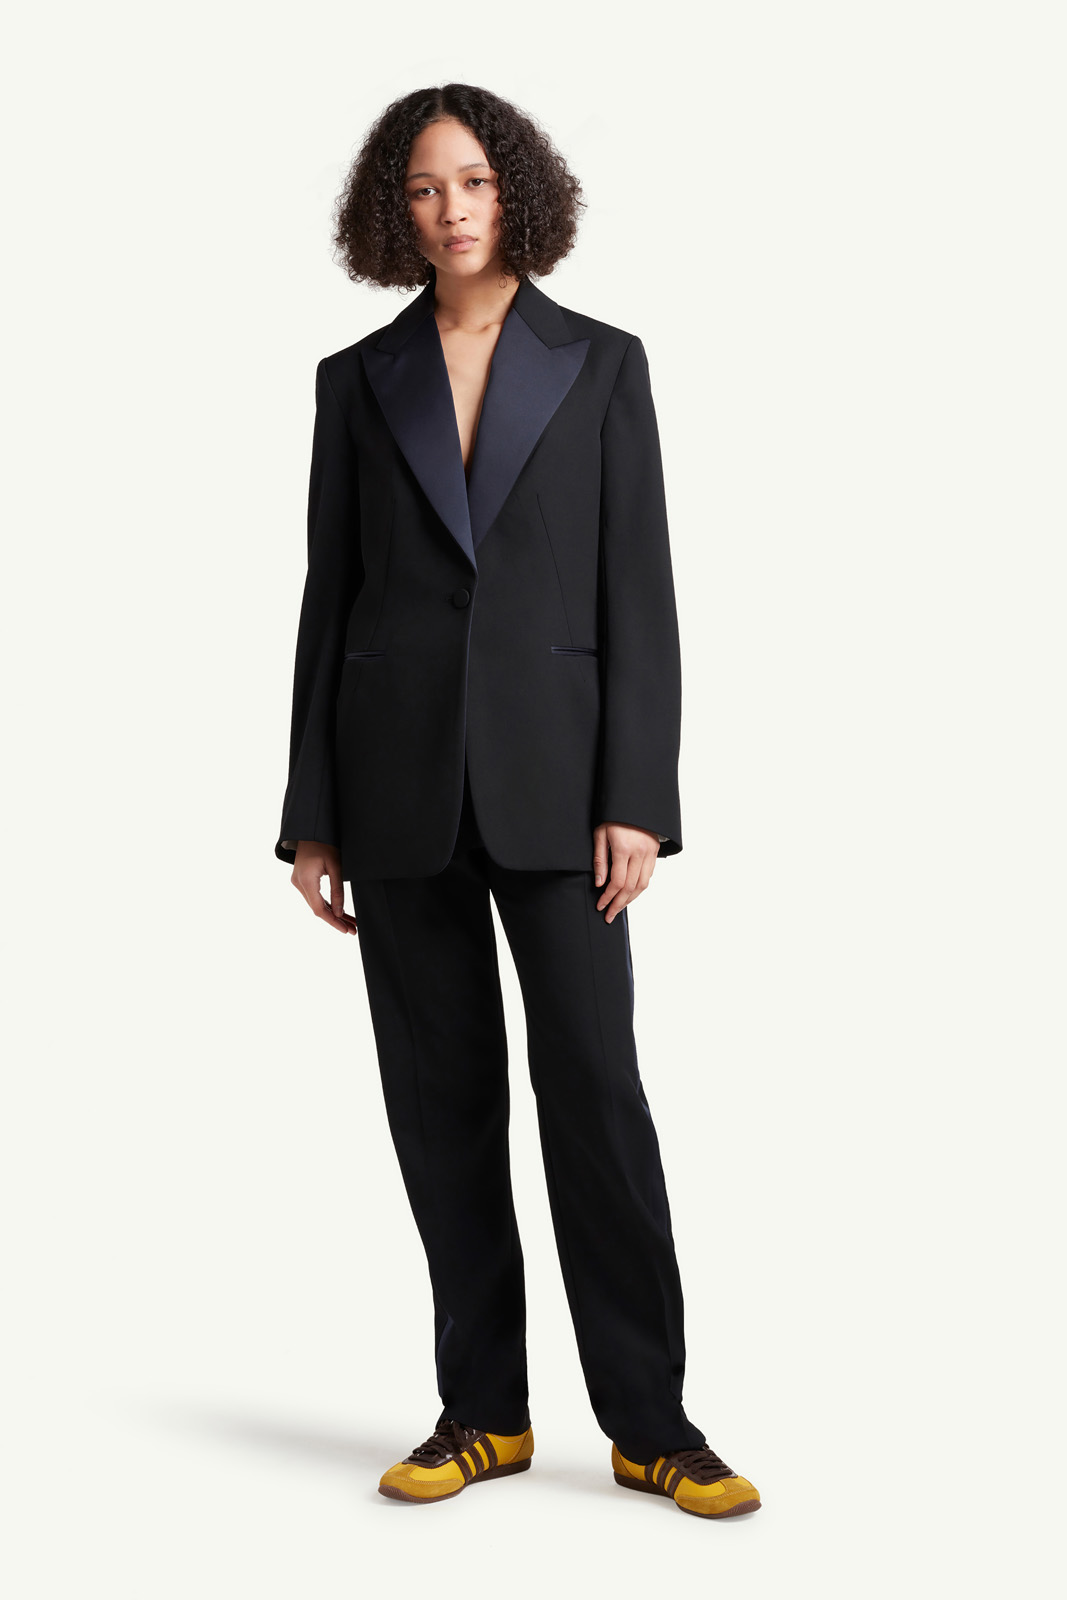 Womenswear model wearing black Wales Bonner suit with multi colour trainers